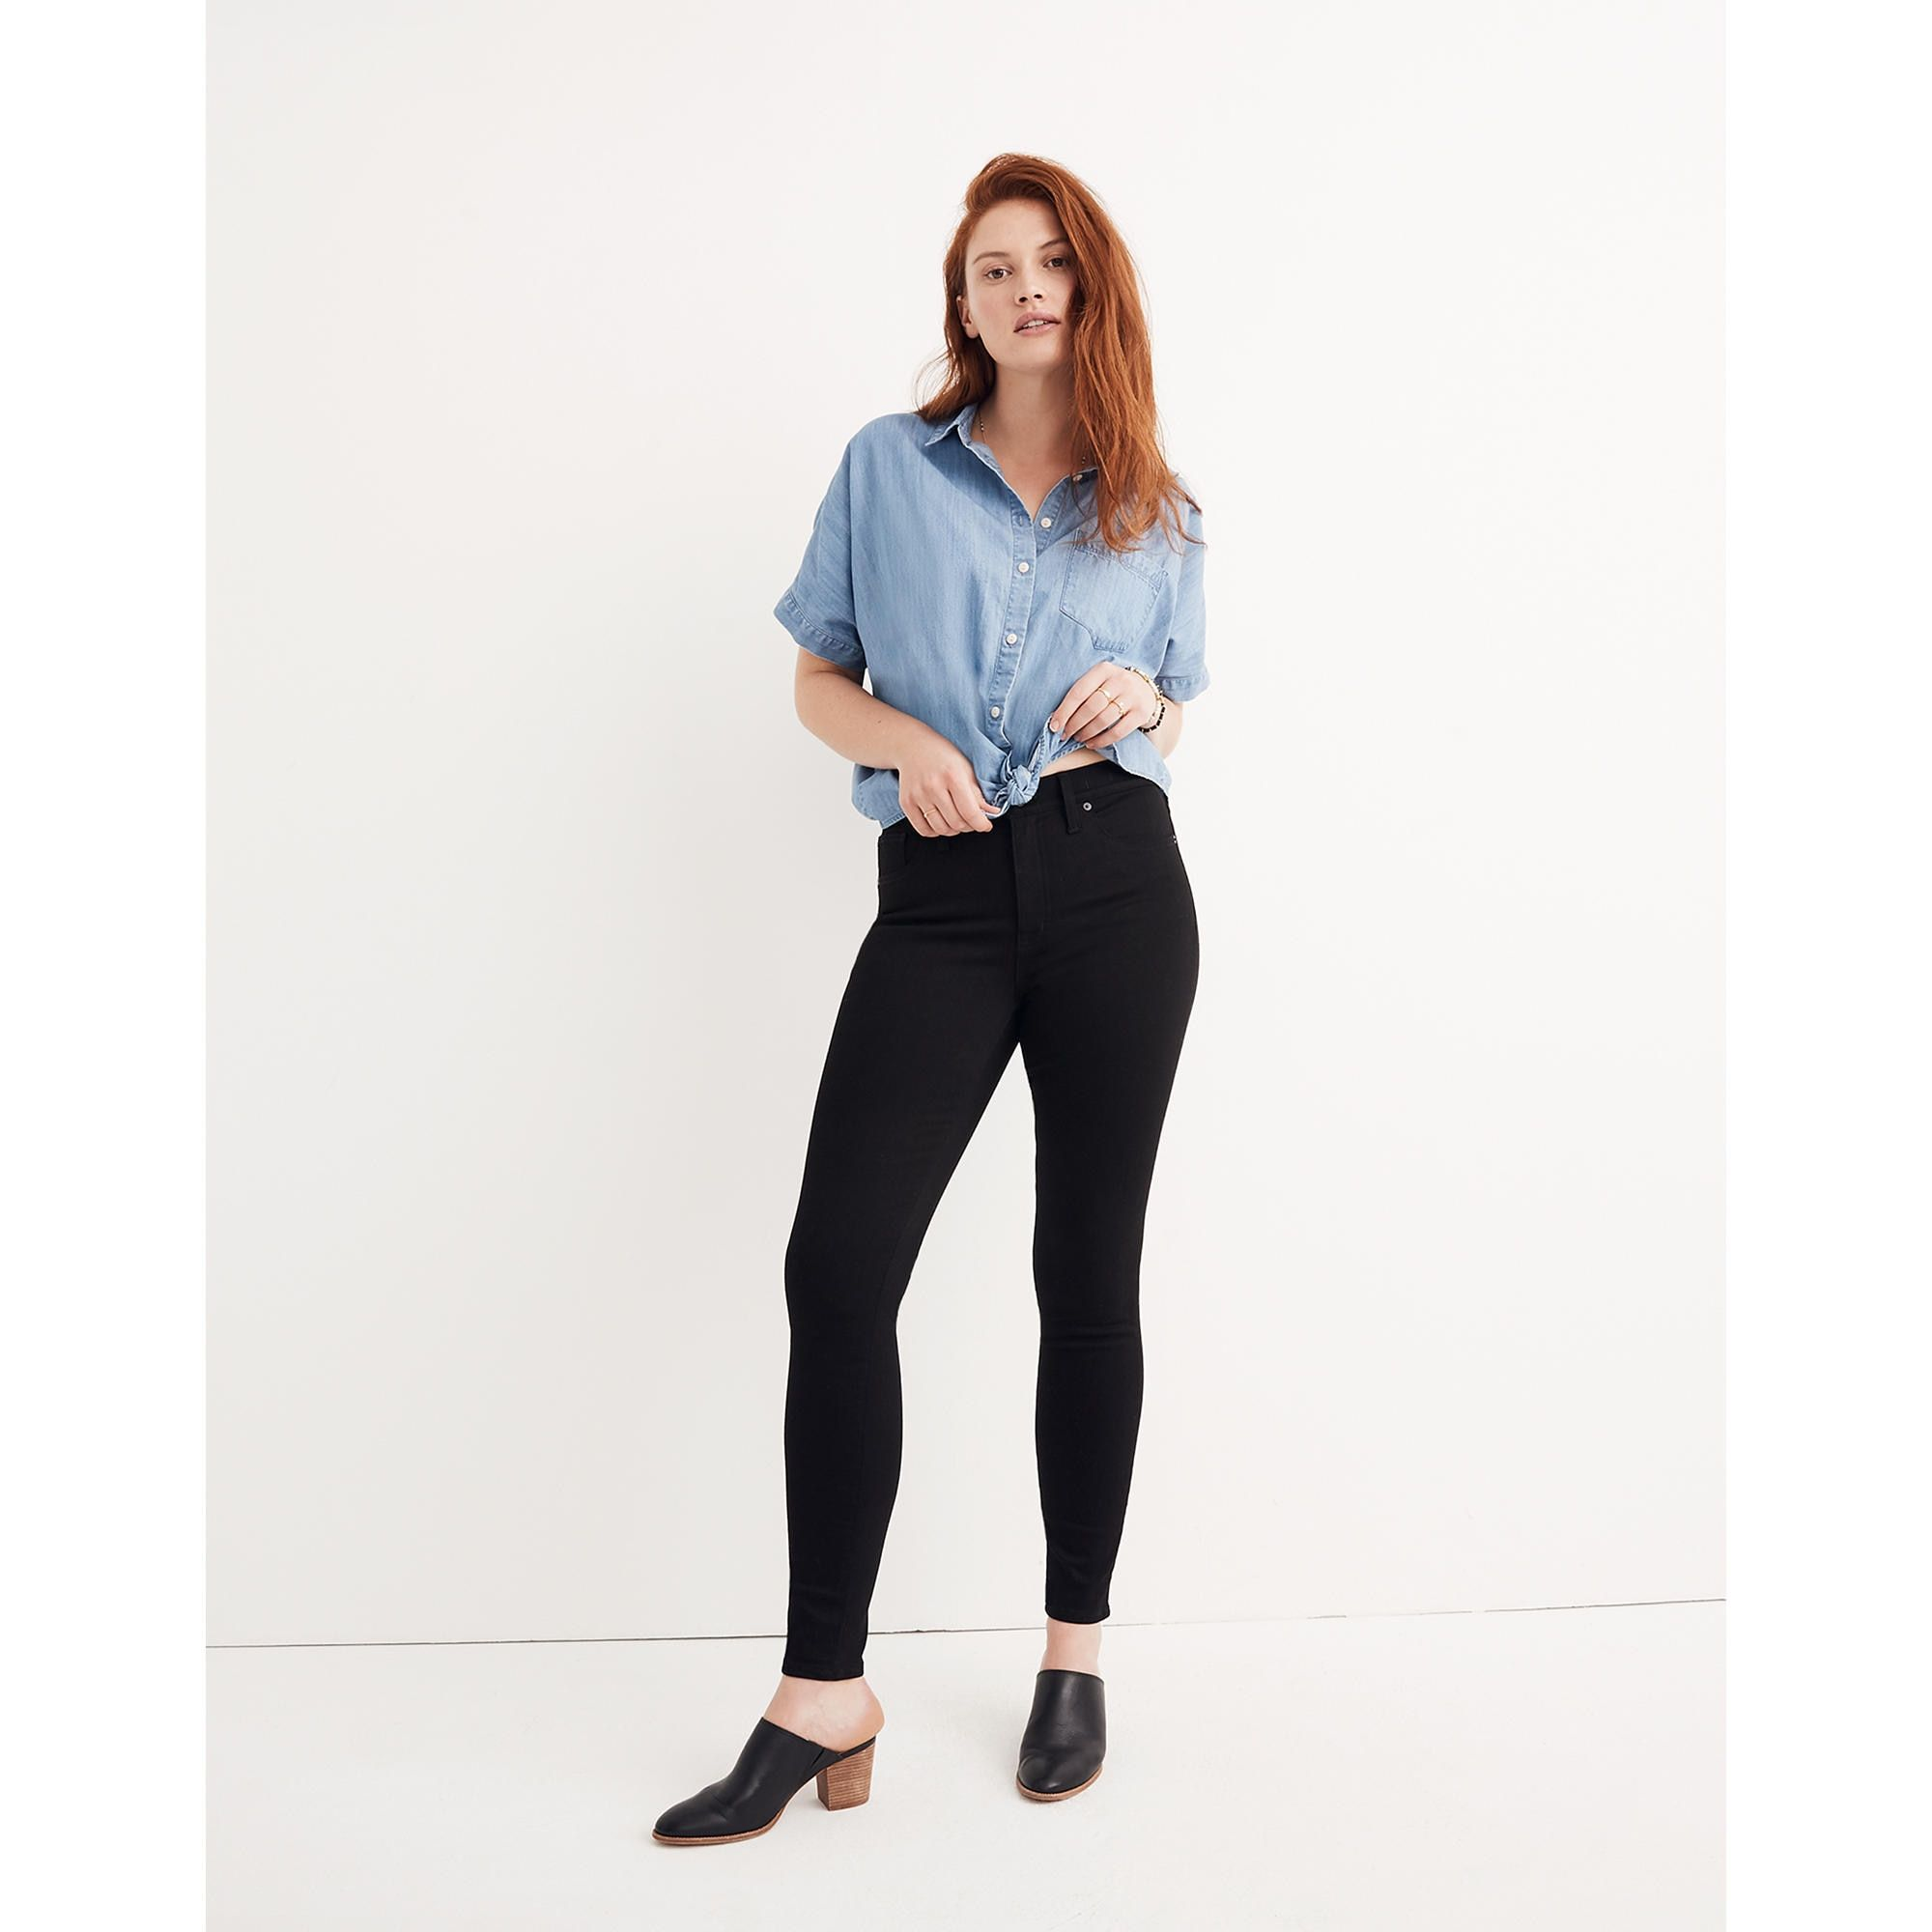 Stay Black Rise 9 Isko In High Jeans Skinny aYZP7qF